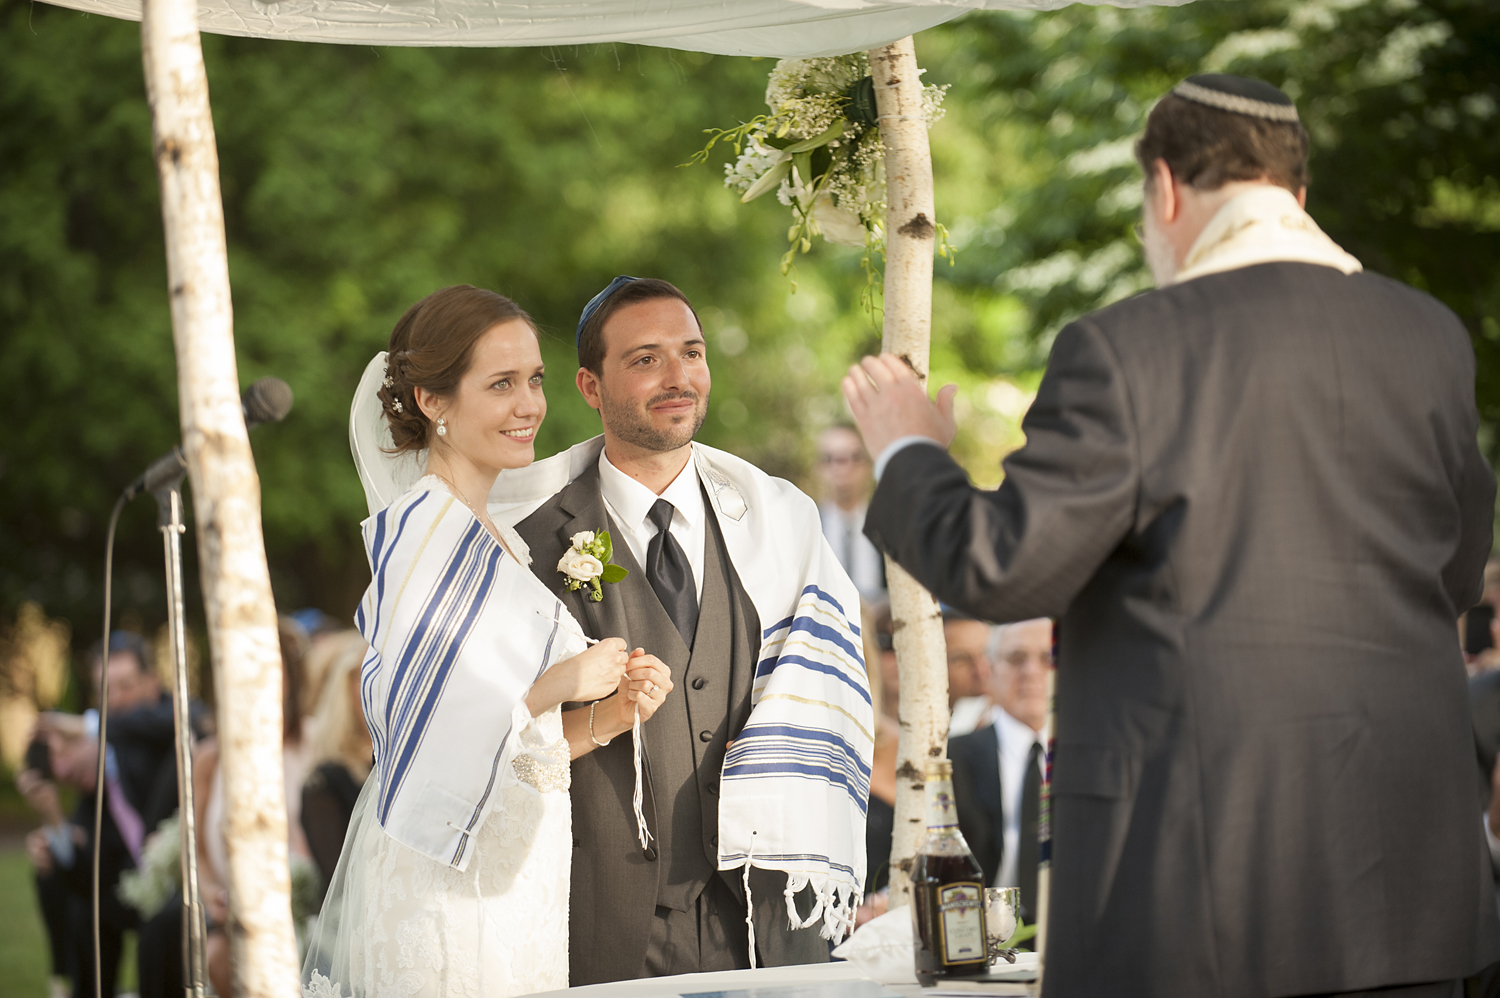 bride and groom under chuppah at Jewish wedding. NJ wedding photographers